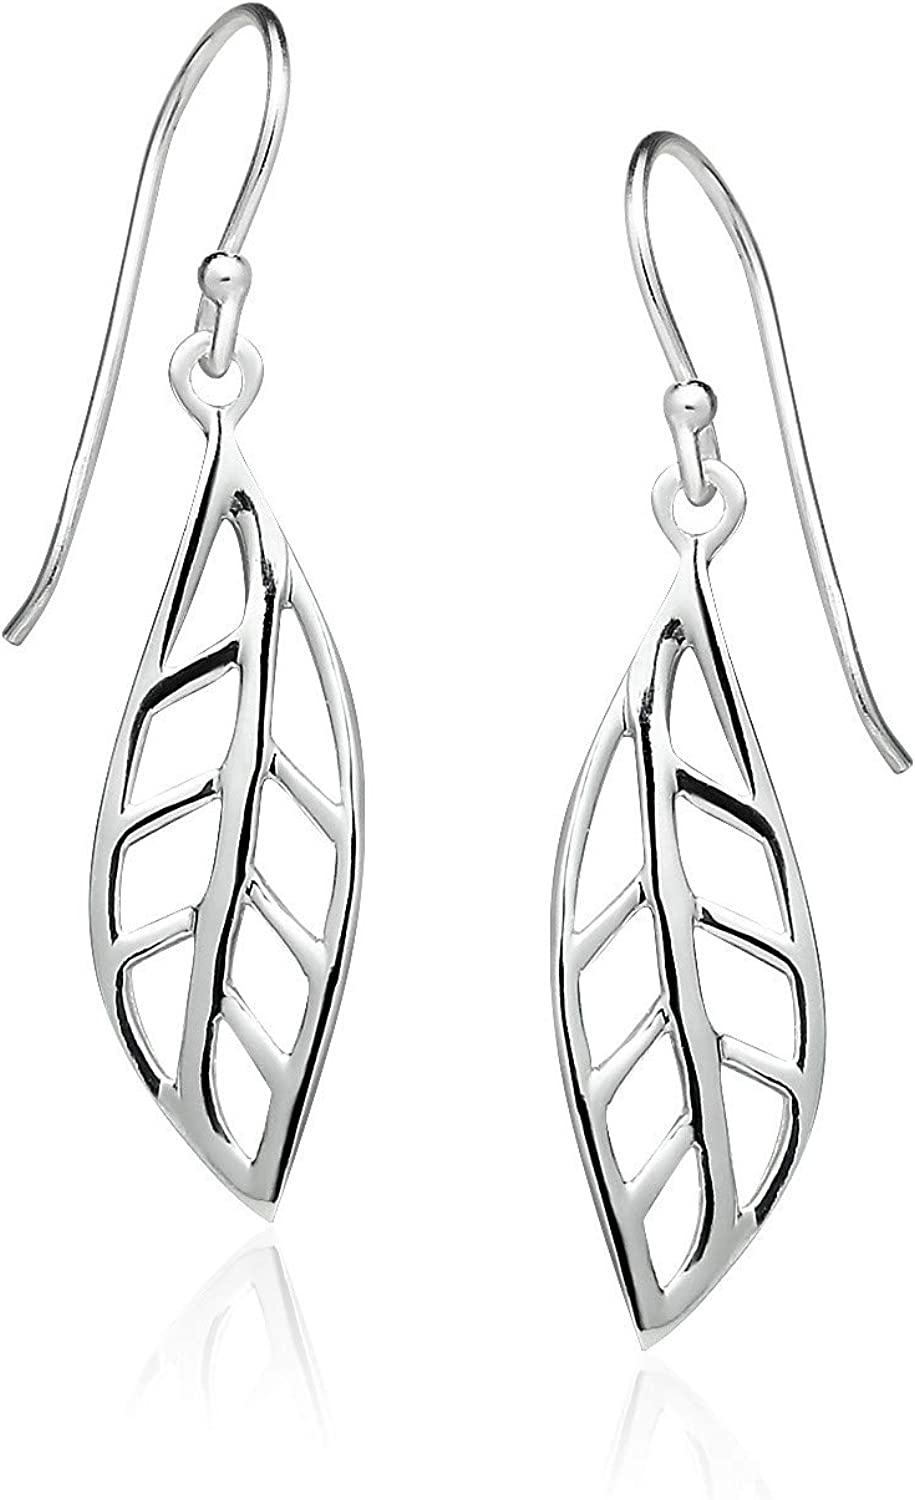 Sterling Silver Dangle Earrings Lightweight Highly Polished Modern Flower Earrings with French Wire